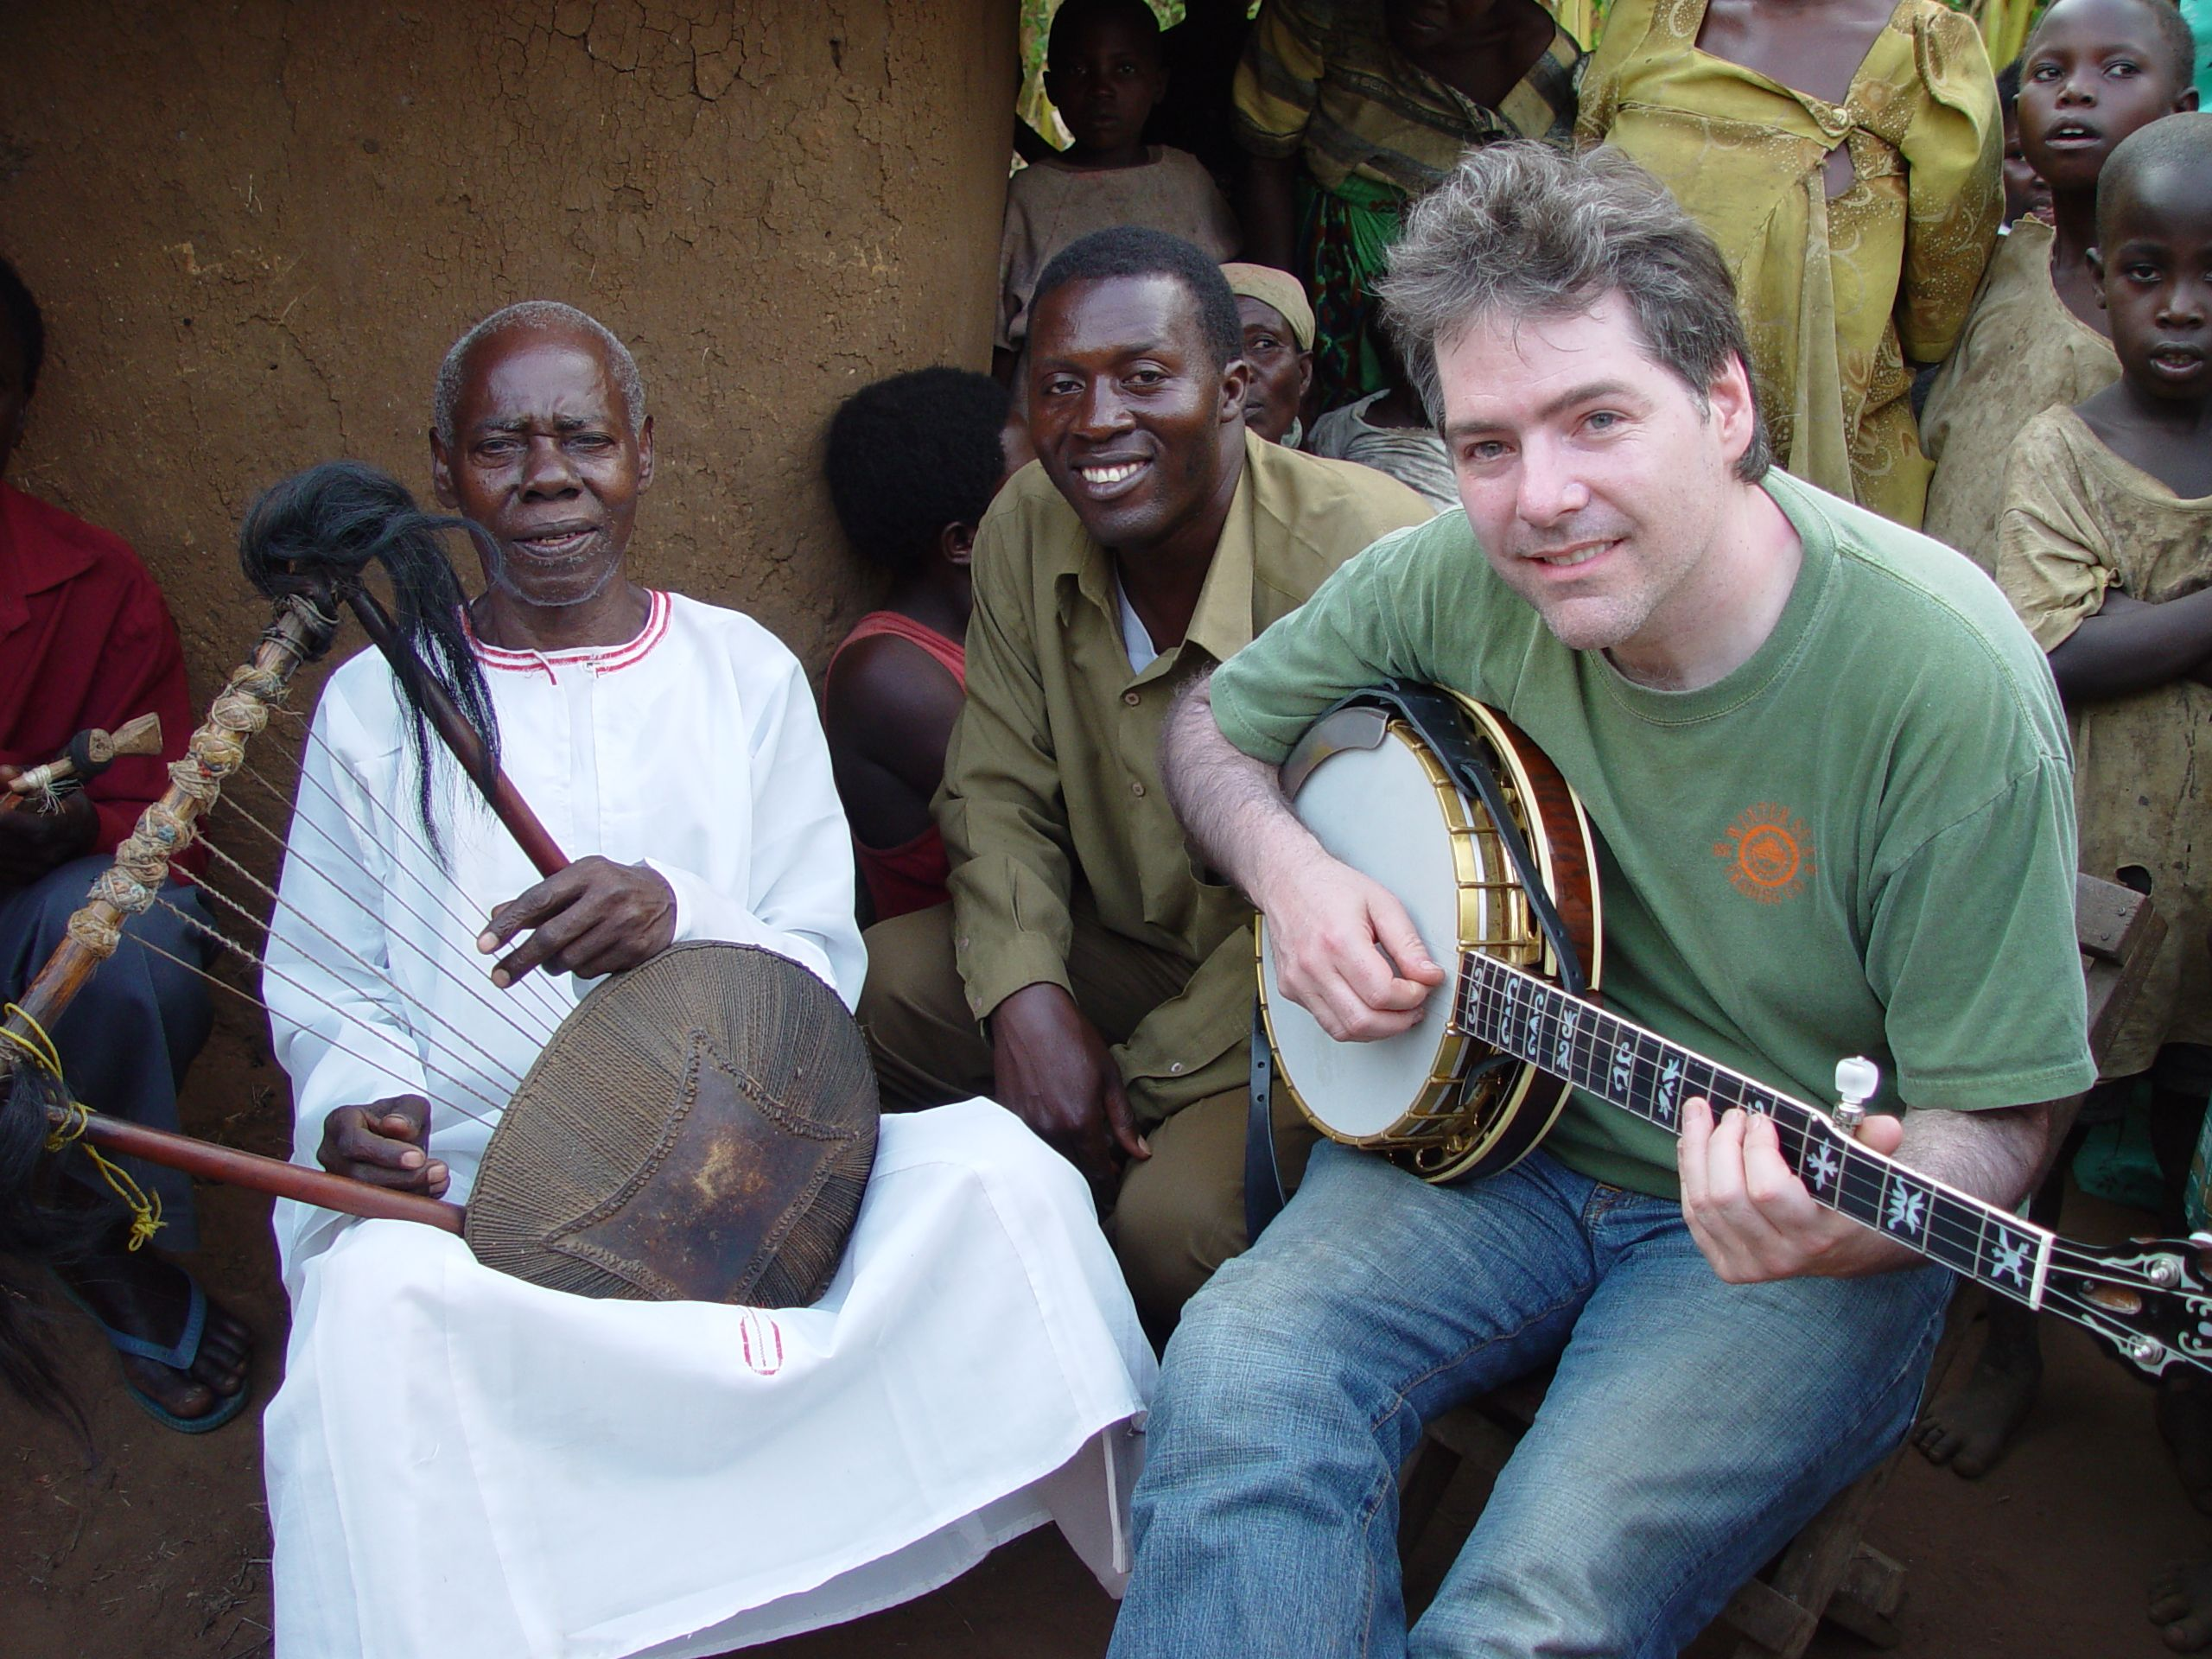 Bela Fleck in Mali tracing the banjo's origins and jamming with the locals.